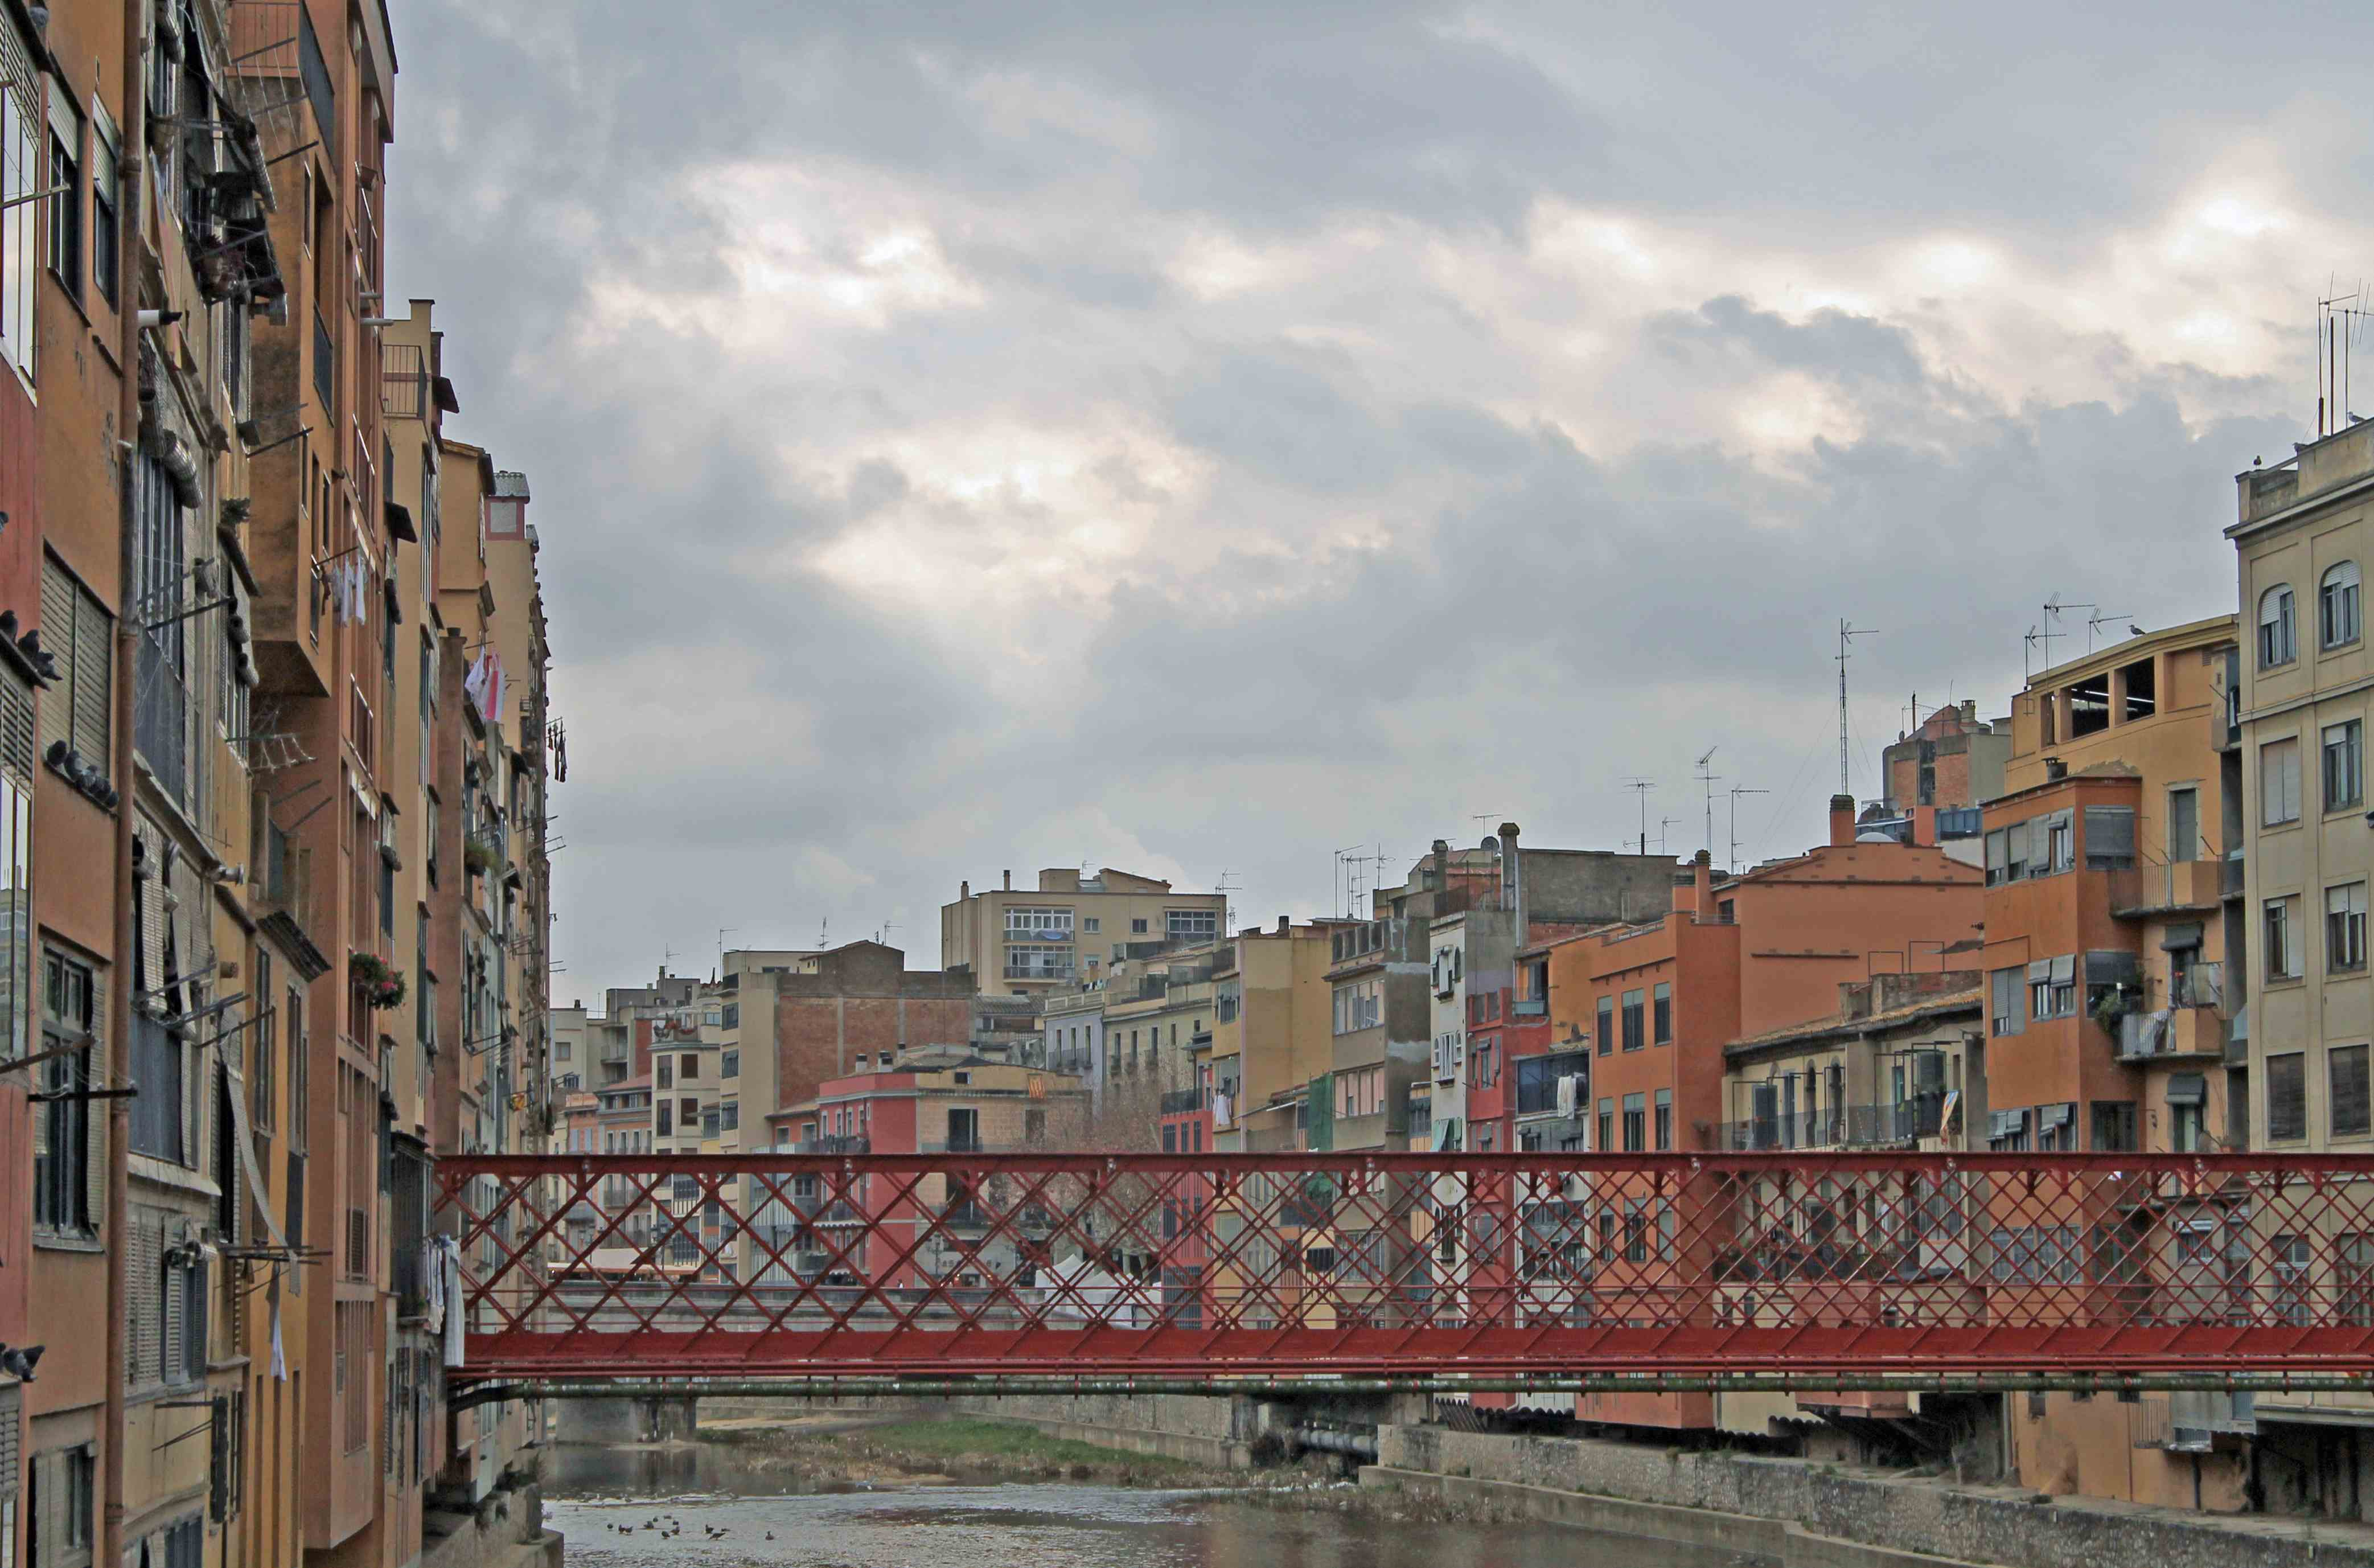 Eiffel Bridge in Girona - Focal Journey